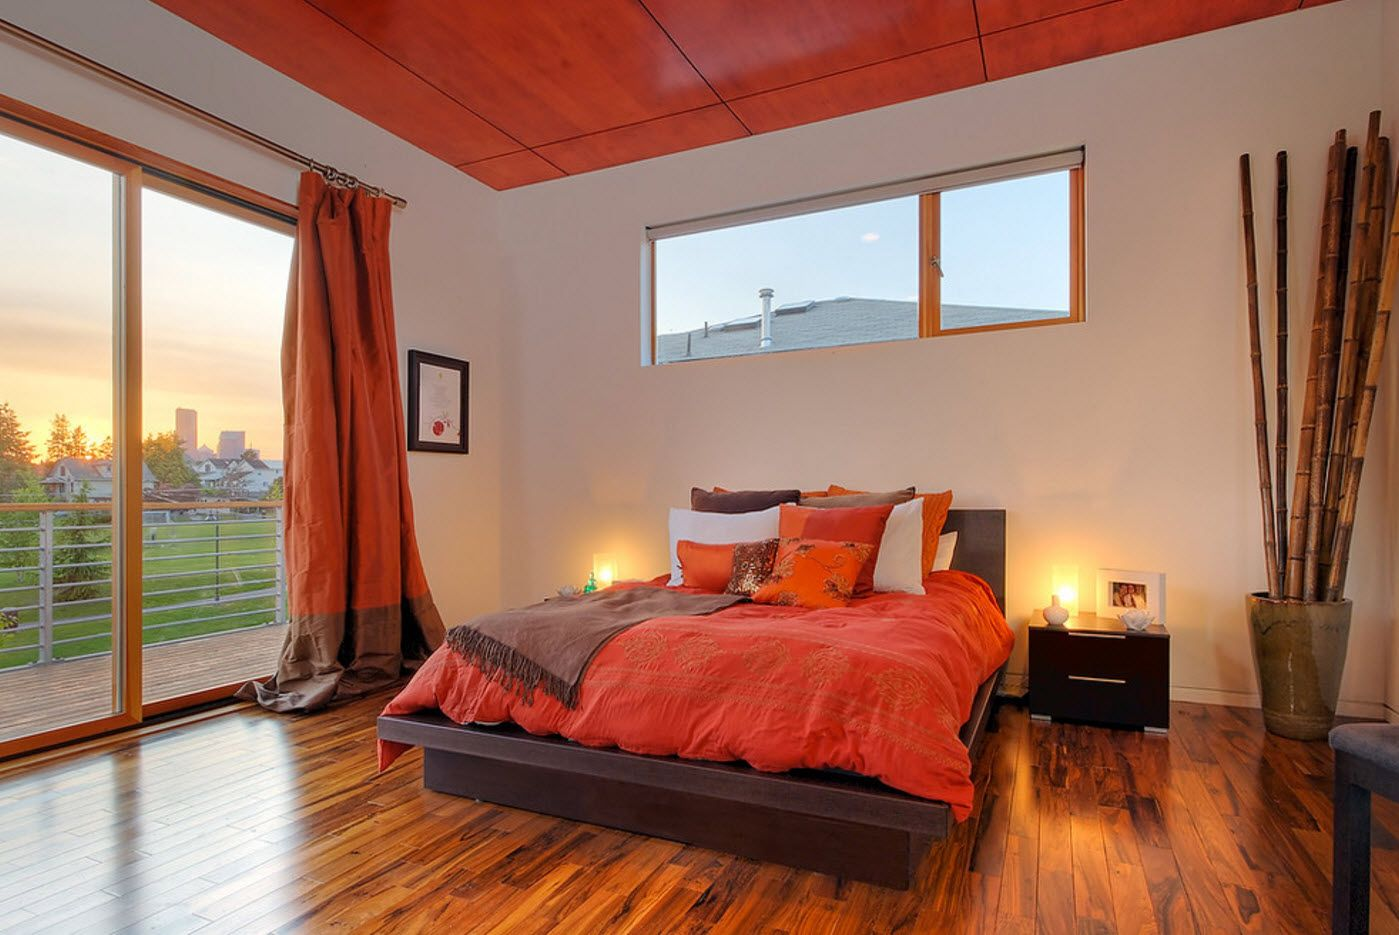 Gorgeous and unrepeatable bedroom design in nible wooden and dark red shades